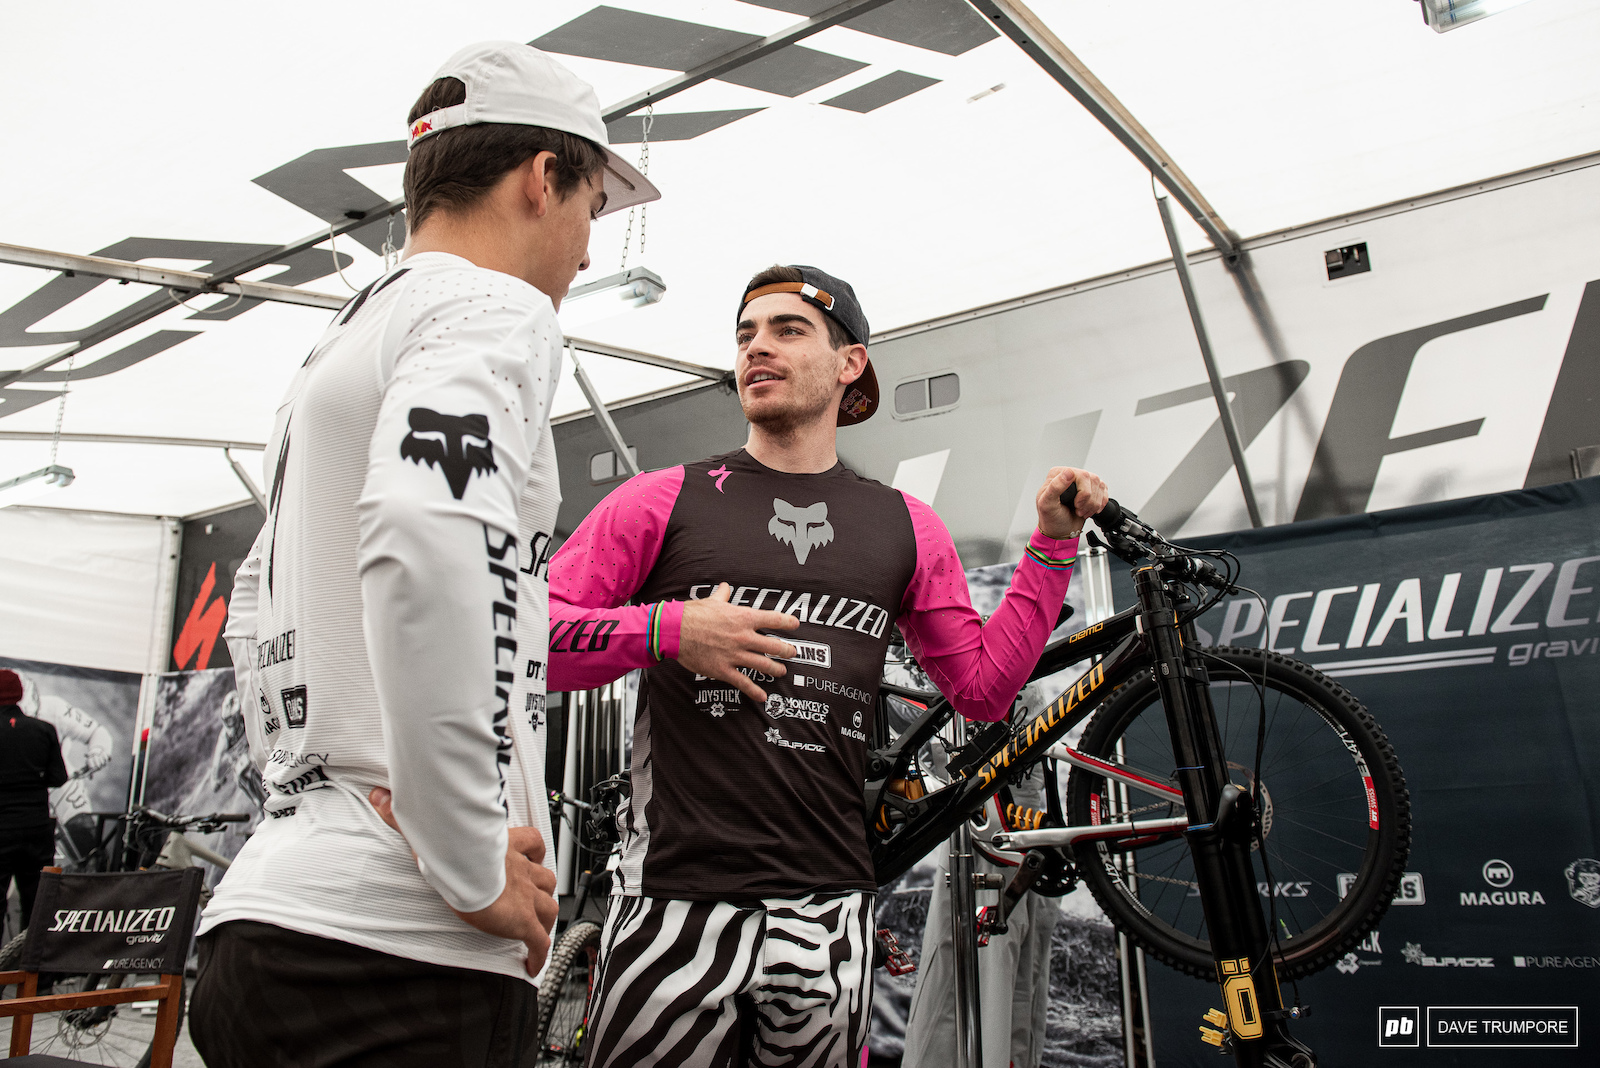 Loic Bruni and Finn Iles keep the mood light before getting down to more serious business on track.